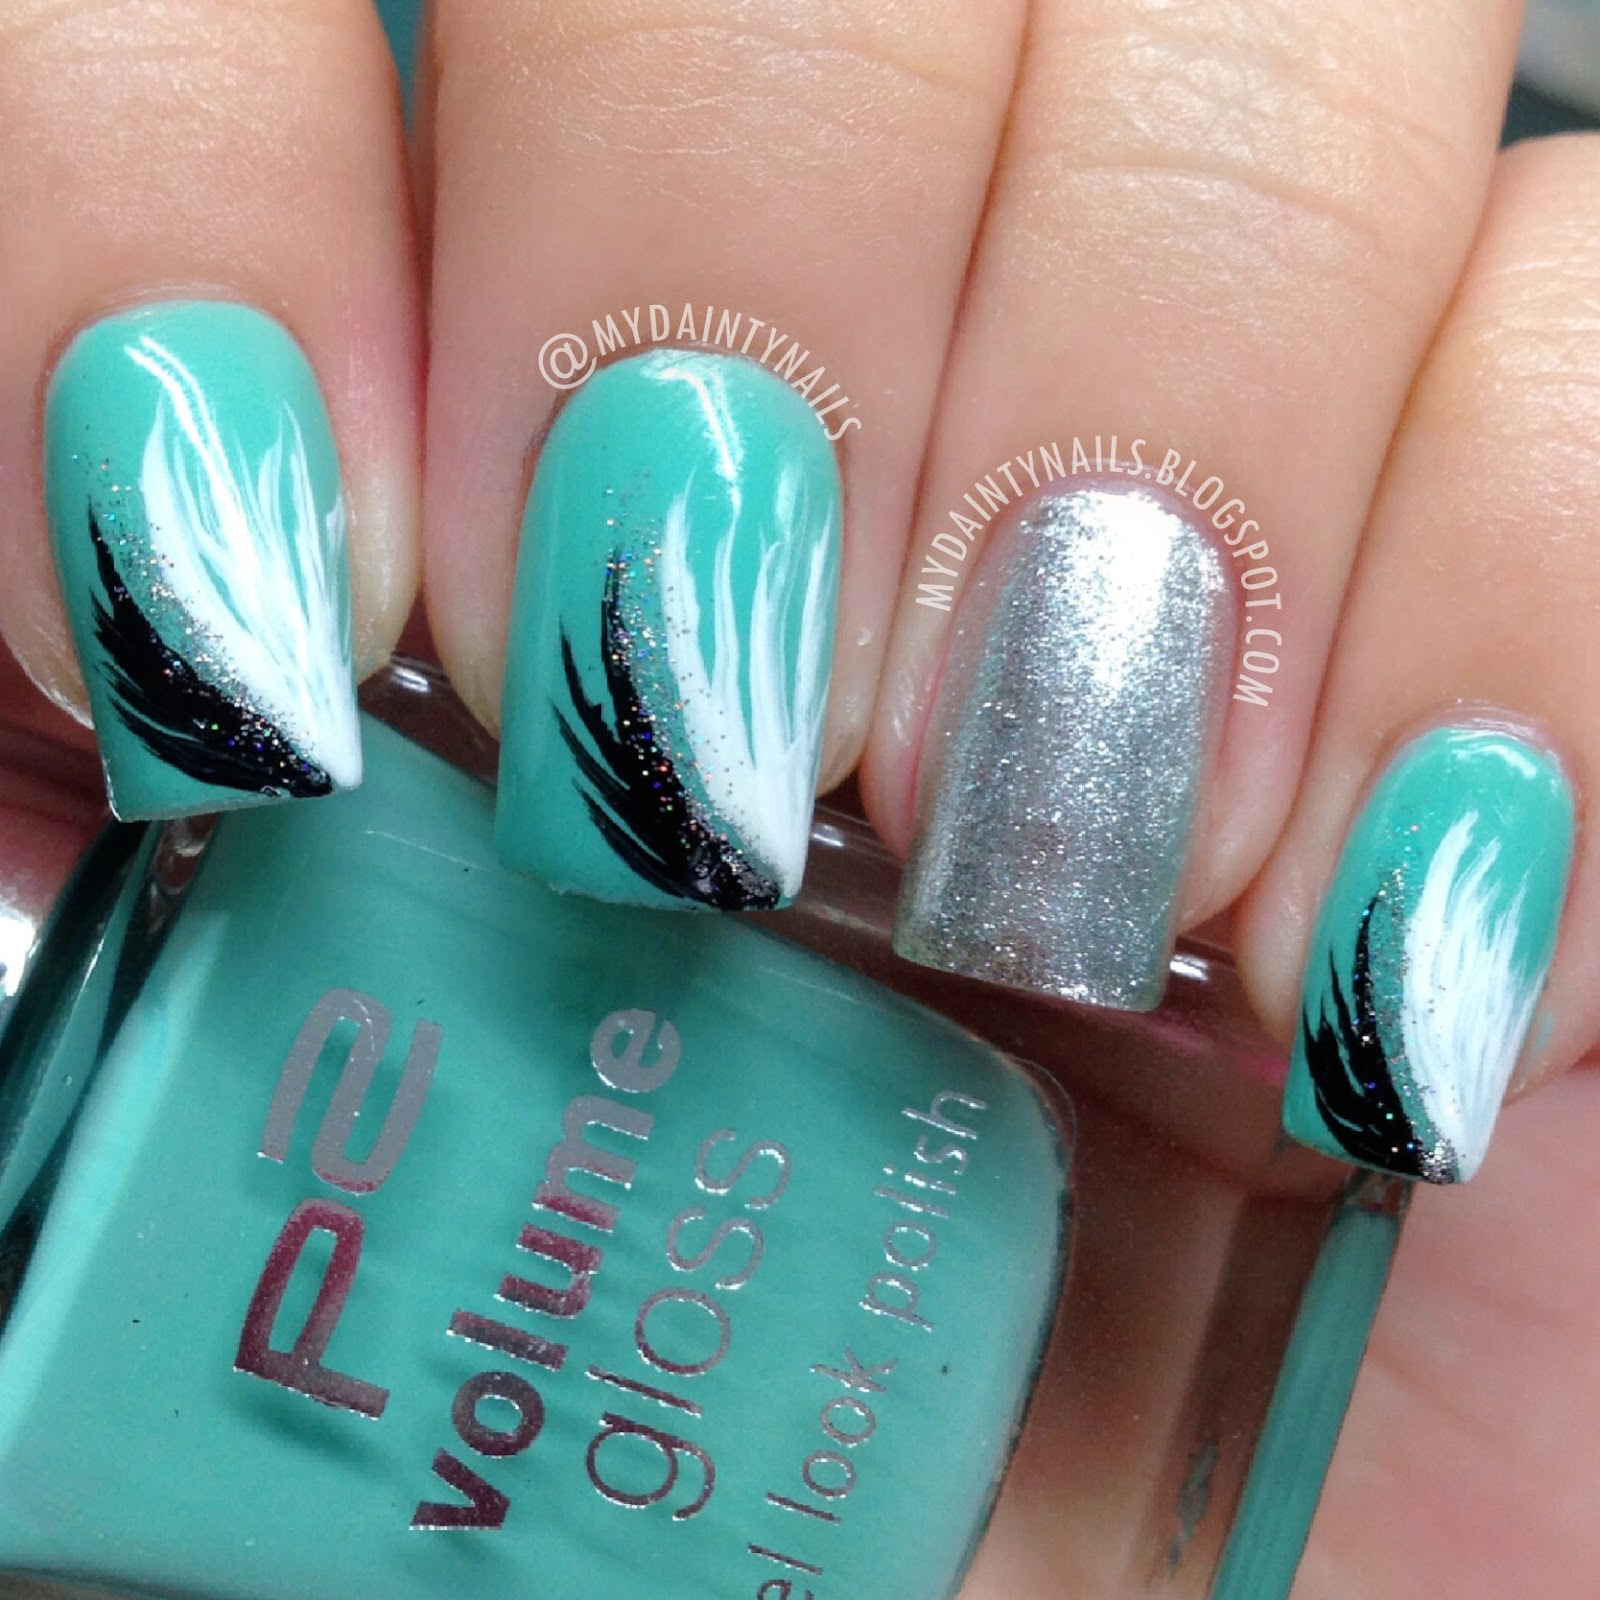 My Dainty Nails: Feather nails